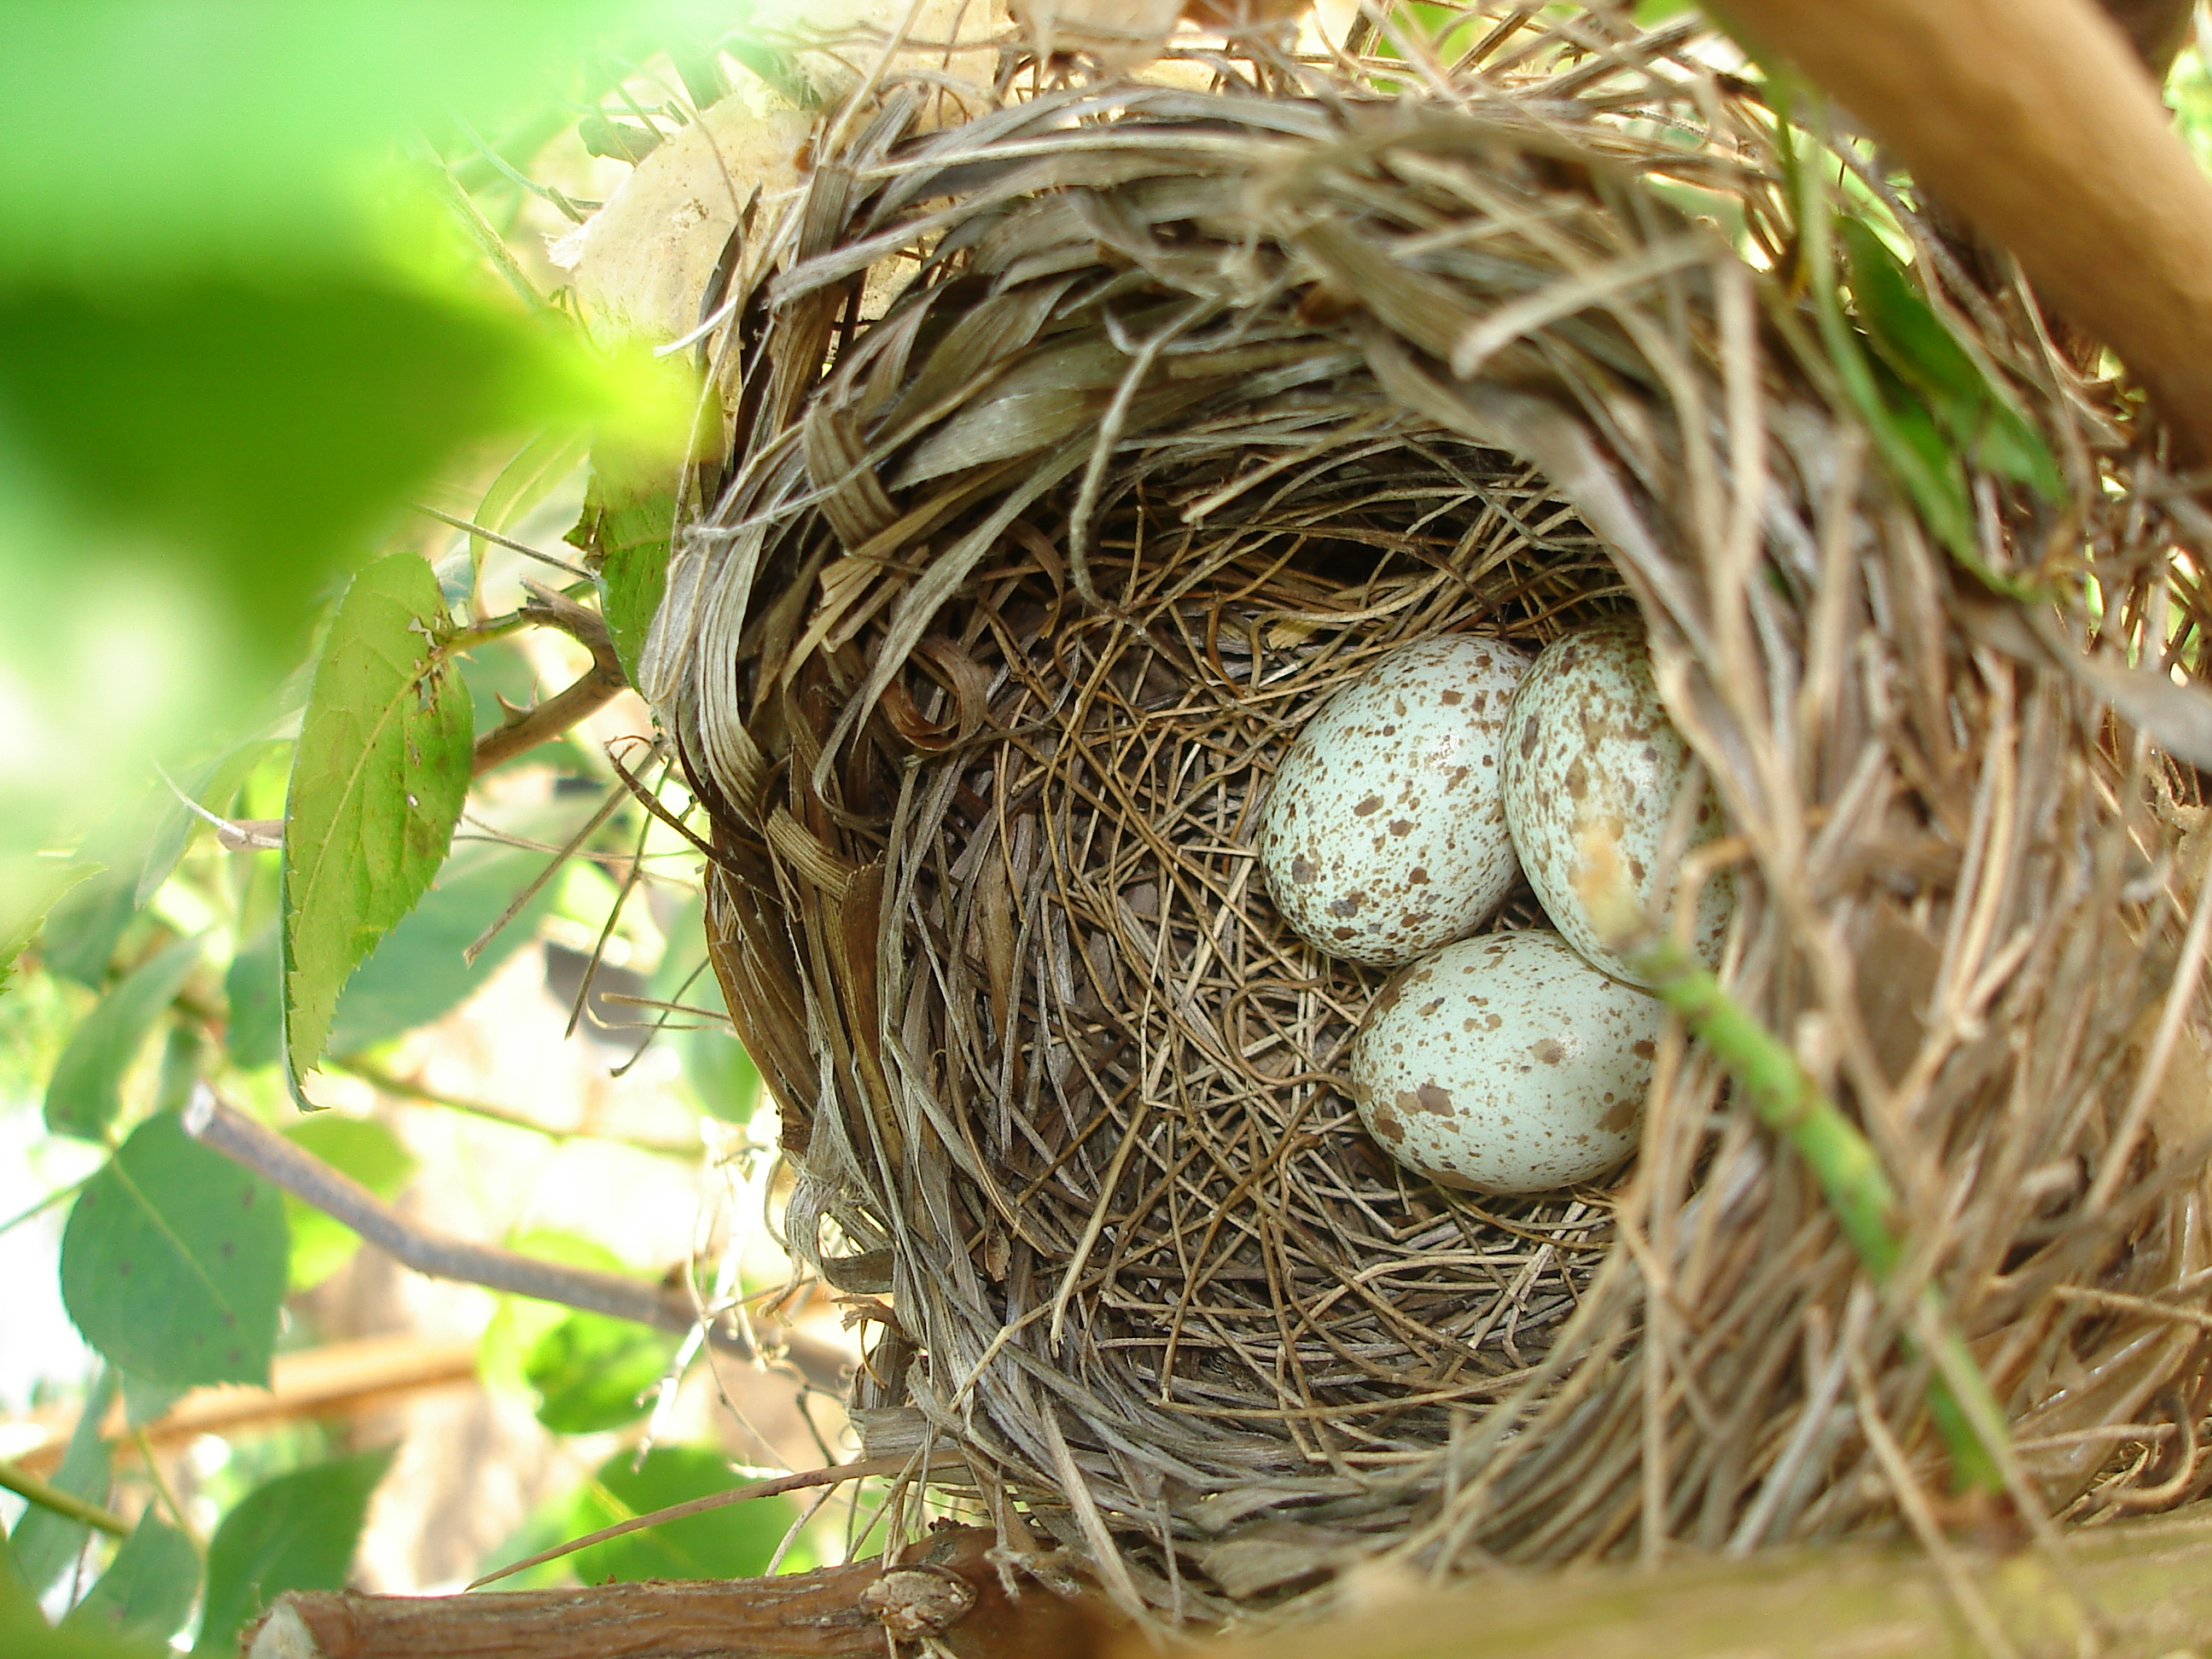 File:Northern Cardinal Eggs in nest.jpg - Wikimedia Commons